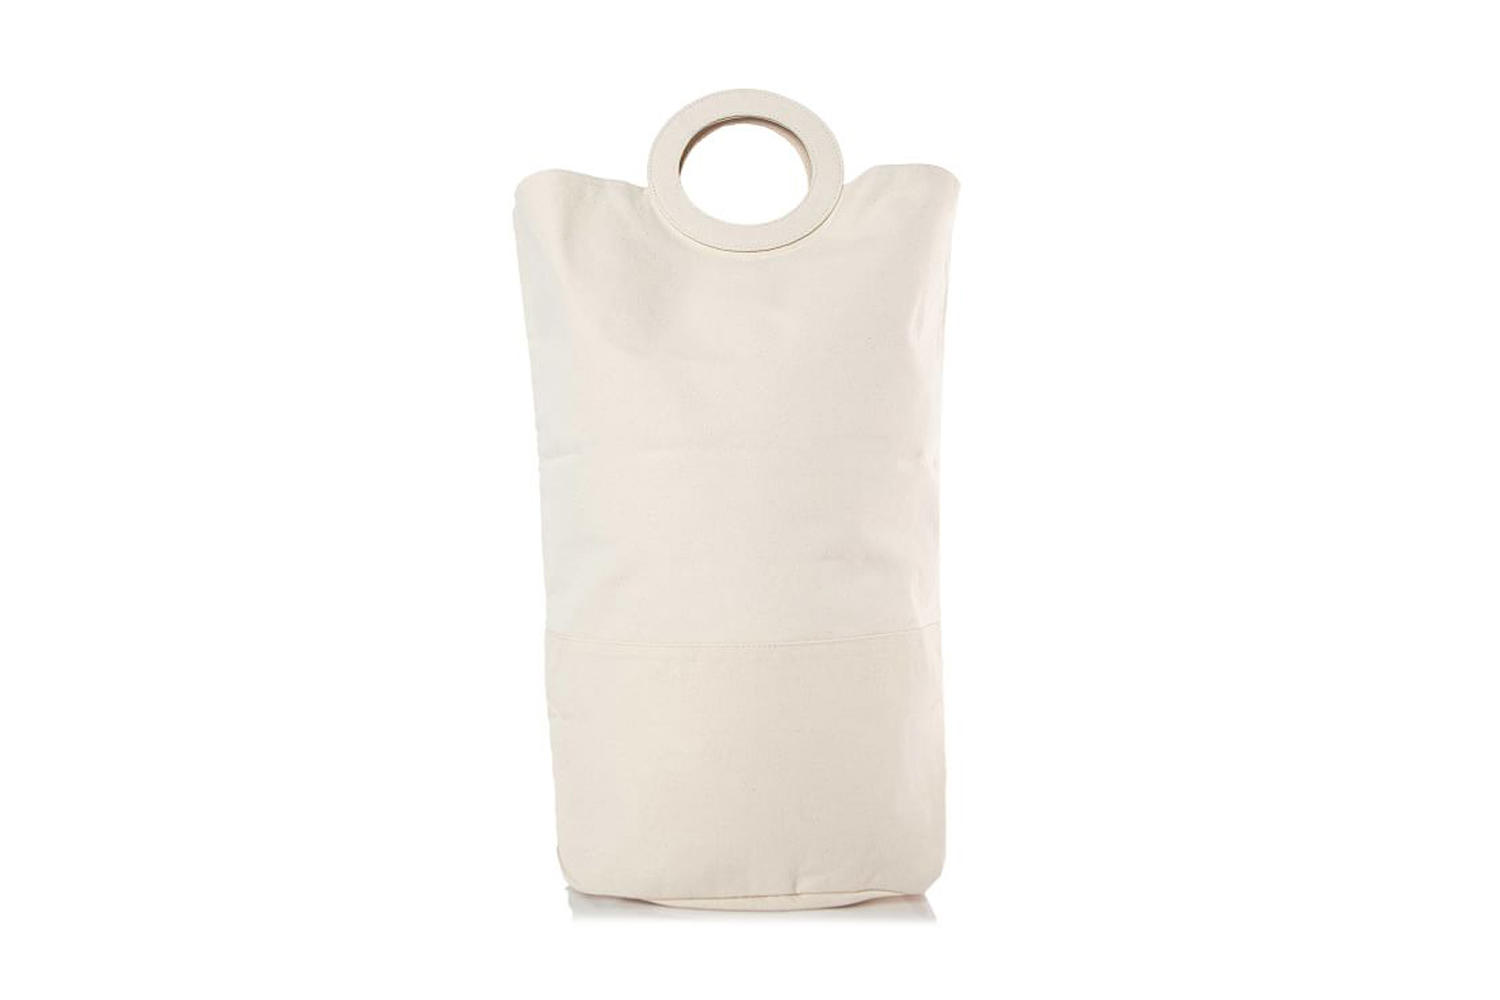 the canvas natural laundry hamper tote is $59 at pottery barn. 14